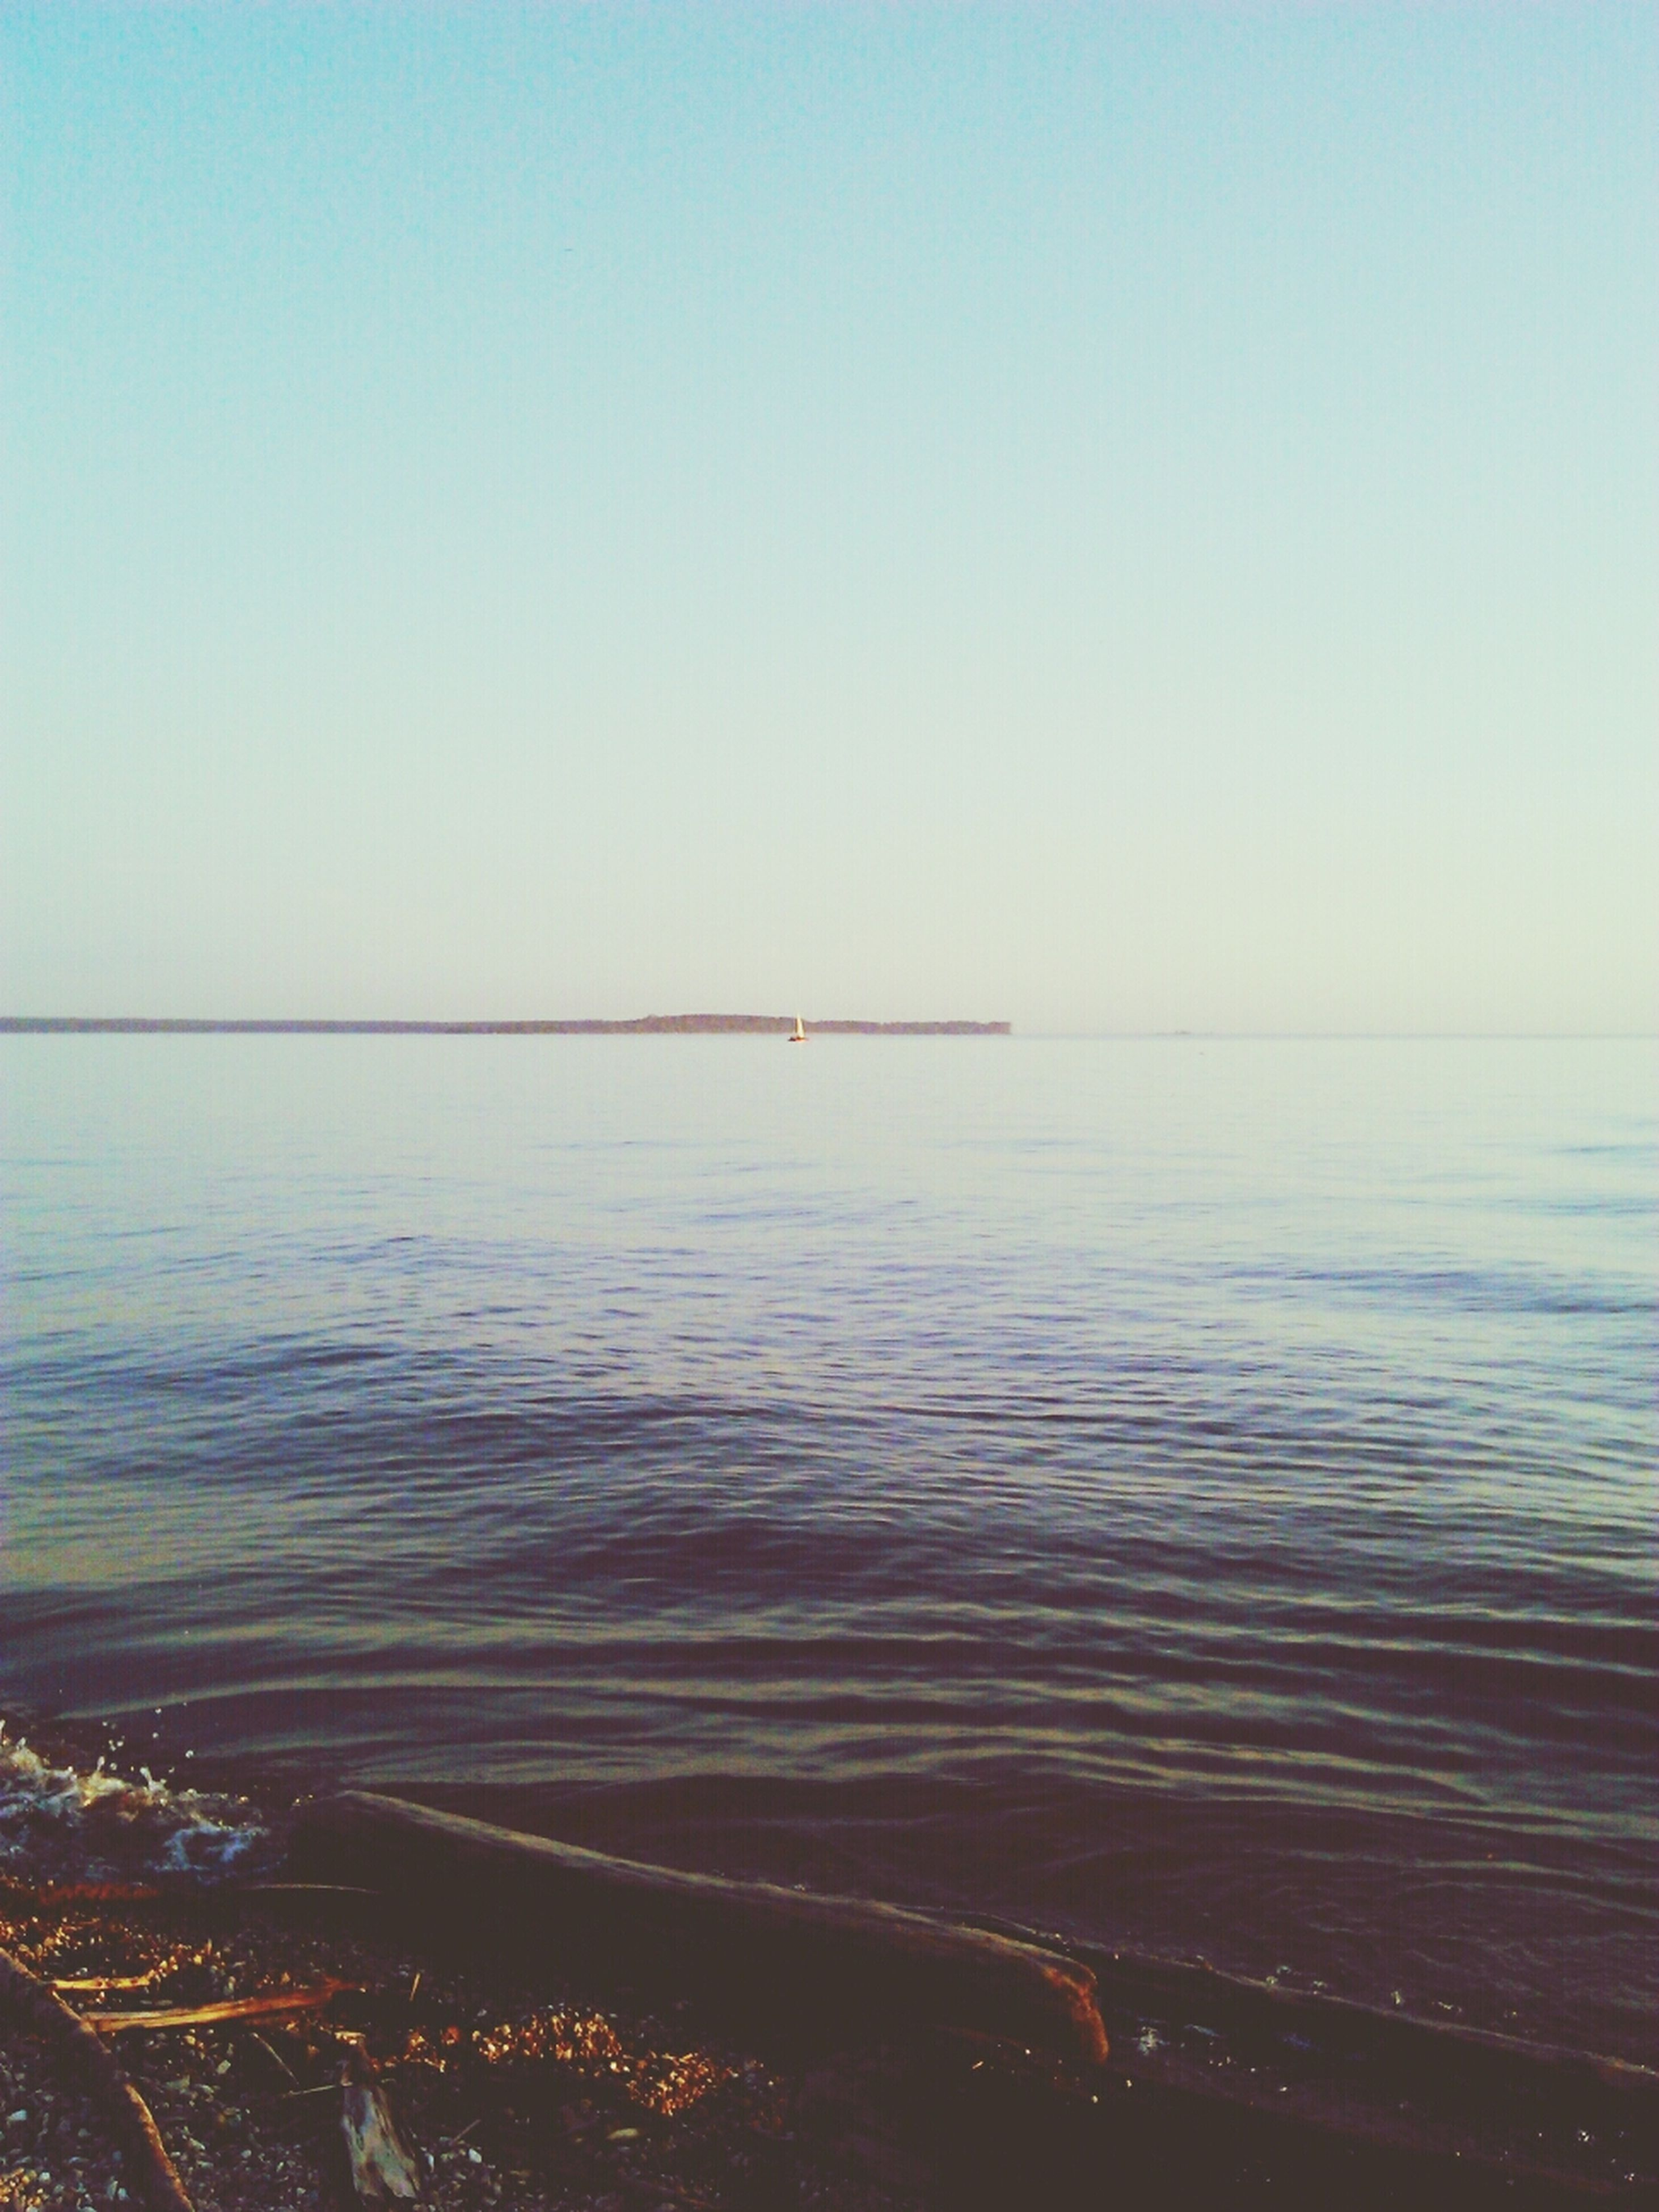 clear sky, water, copy space, sea, tranquil scene, scenics, tranquility, beauty in nature, horizon over water, nature, blue, idyllic, outdoors, beach, sky, no people, calm, remote, non-urban scene, shore